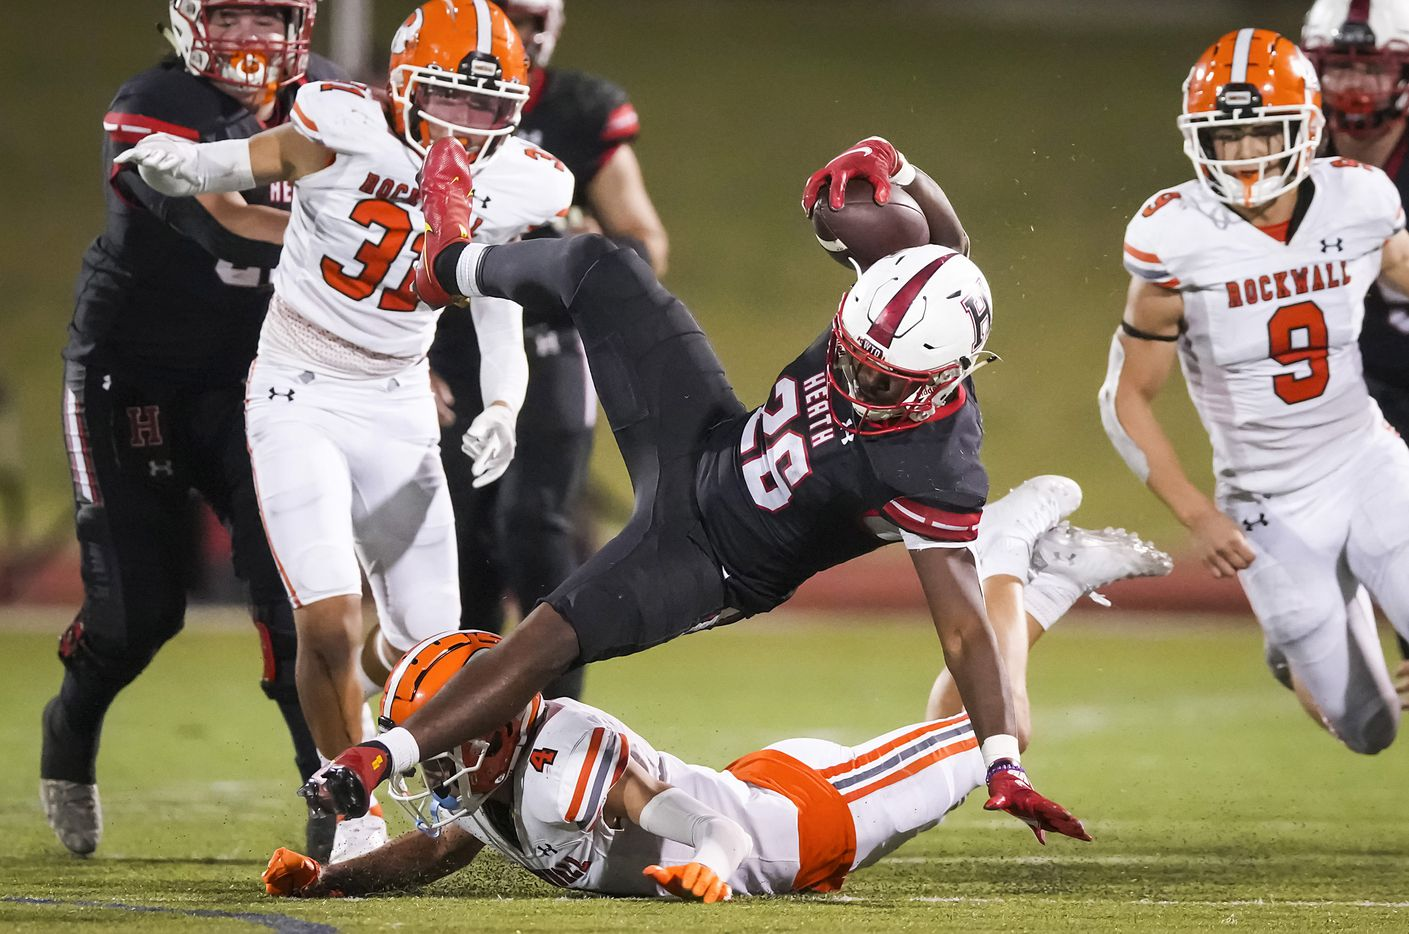 Rockwall-Heath running back  Zach Evans (26) is knocked off his feet by Rockwall defensive back Tre Carter (4) during the second half of a District 10-6A high school football game at Wilkerson-Sanders Stadium on Friday, Sept. 24, 2021, in Rockwall.  Rockwall-Heath won the game 79-71 in double overtime.